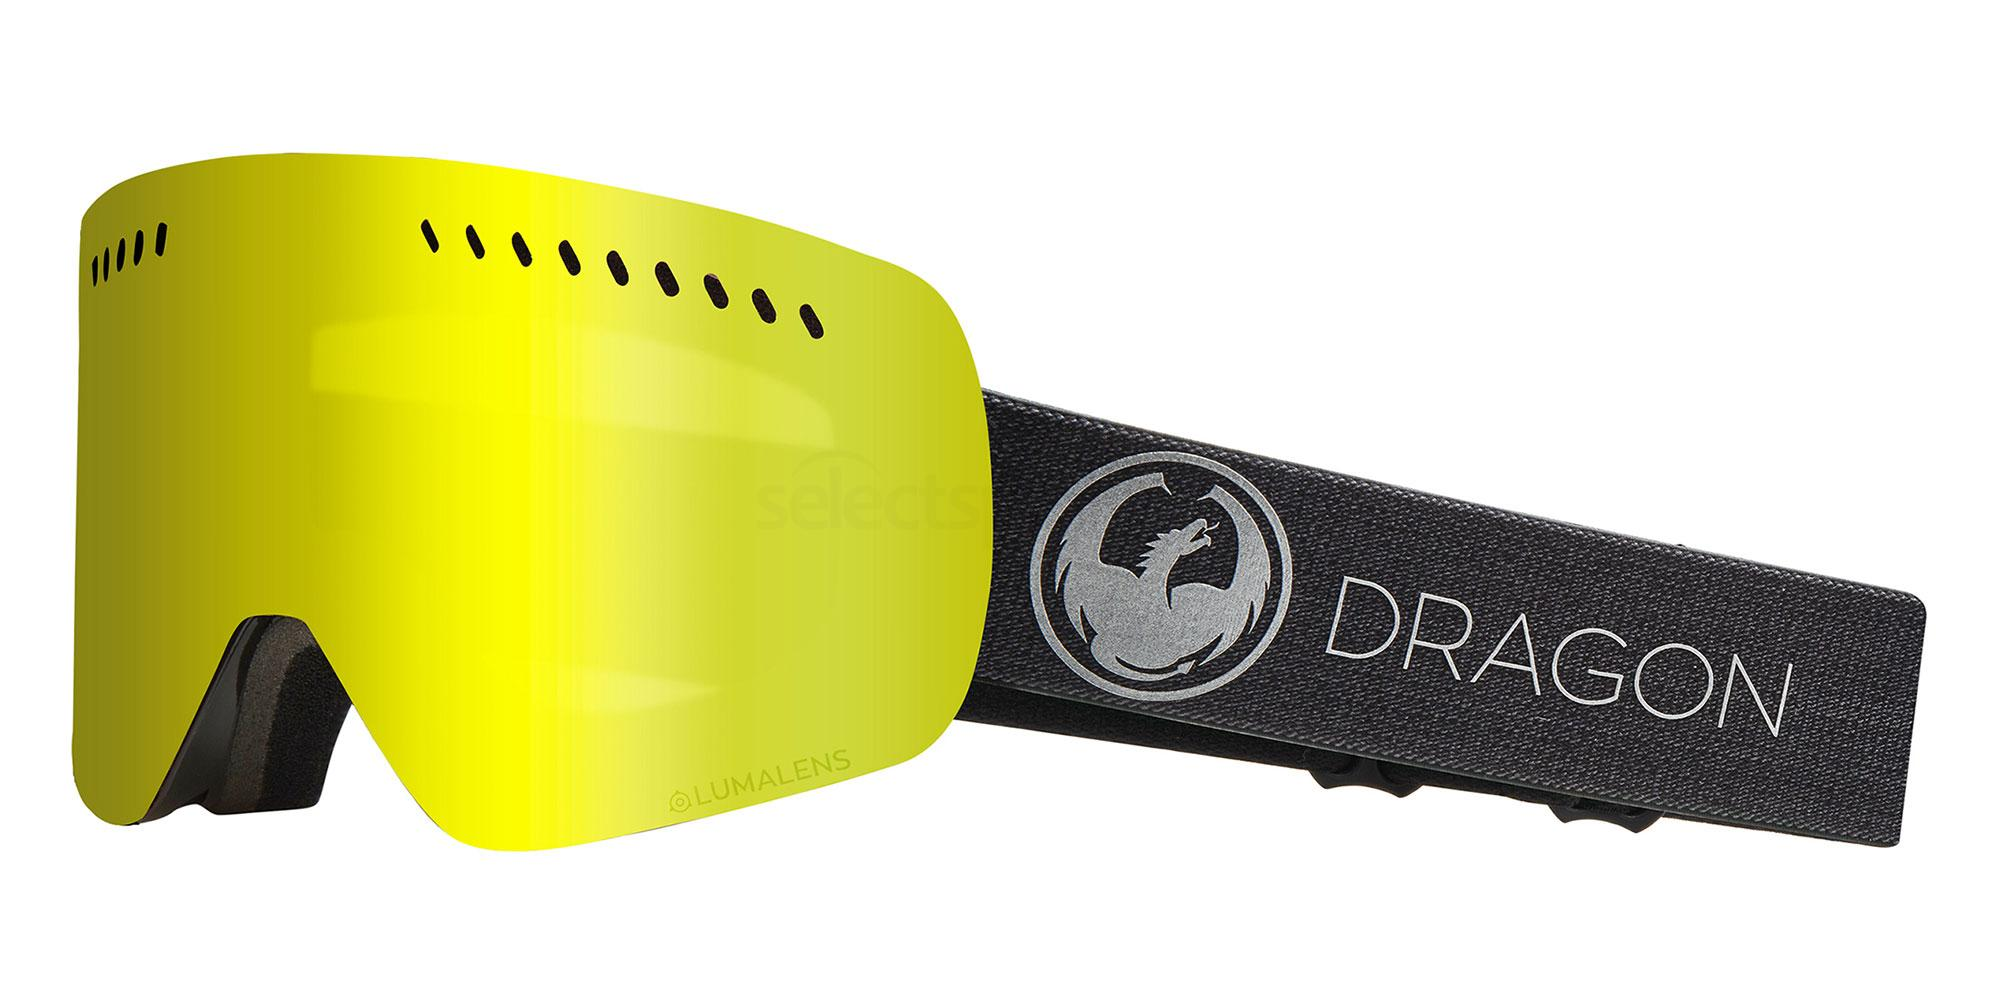 338 DR NFXS NEW PH Goggles, Dragon